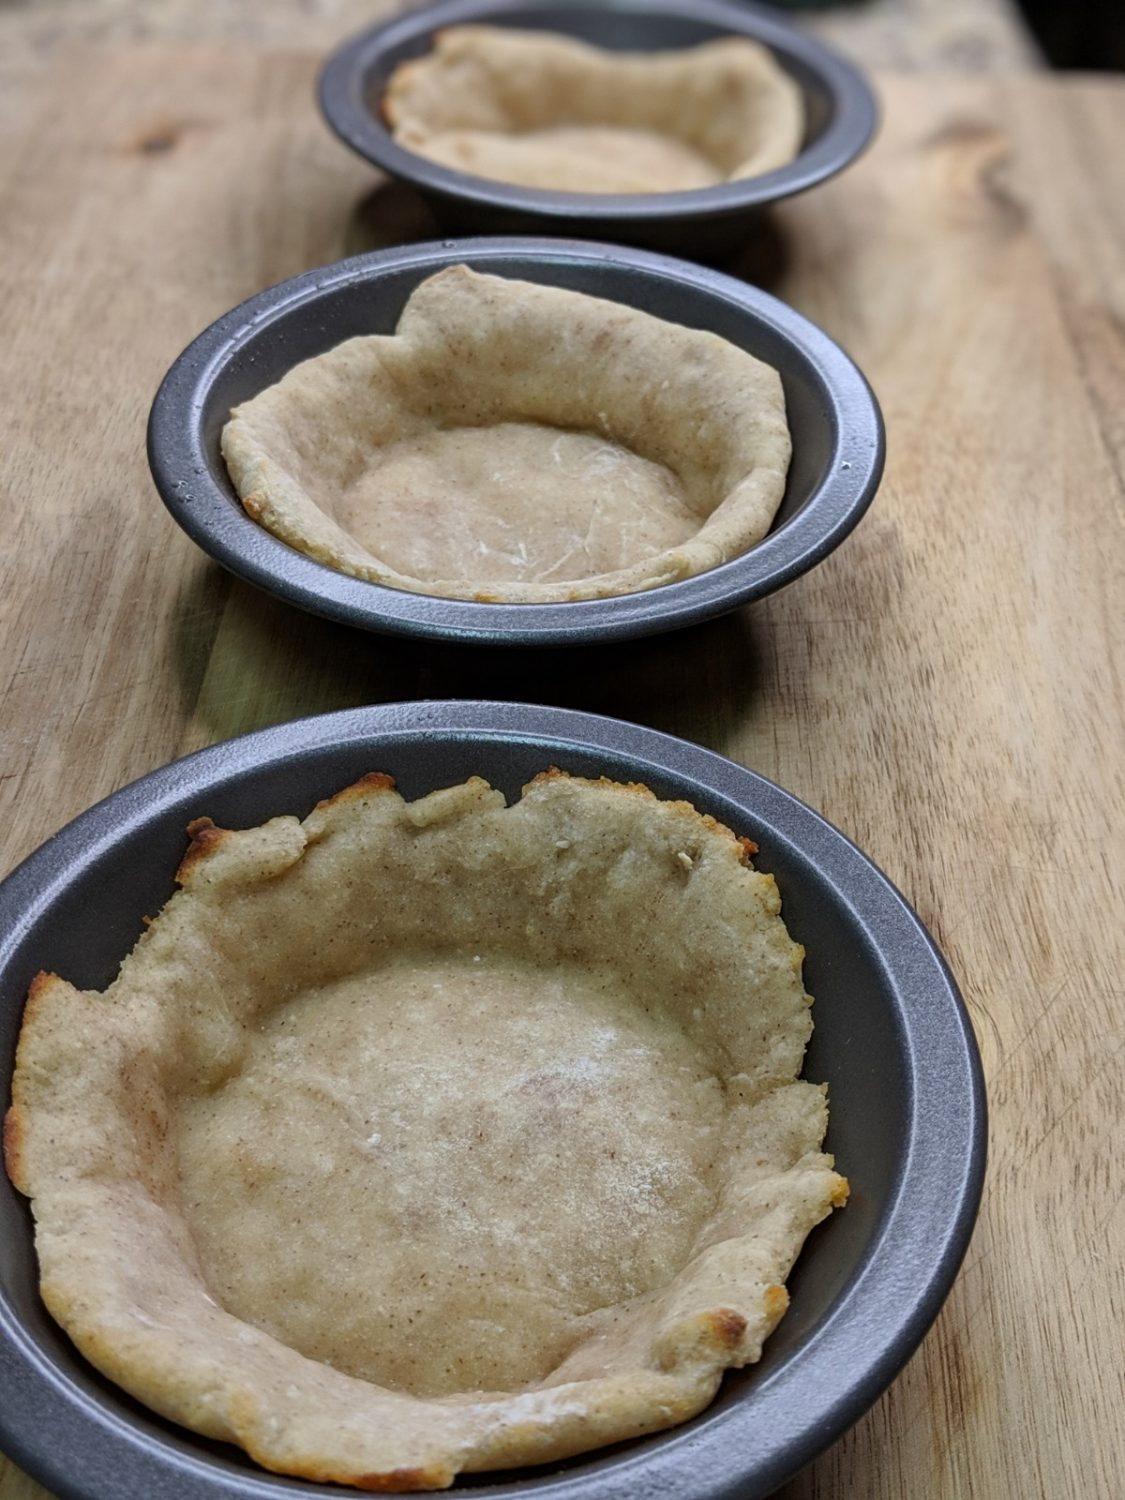 Make Peanut Butter Chocolate Pies using 2-ingredient dough pie crust as a base that everyone loves!